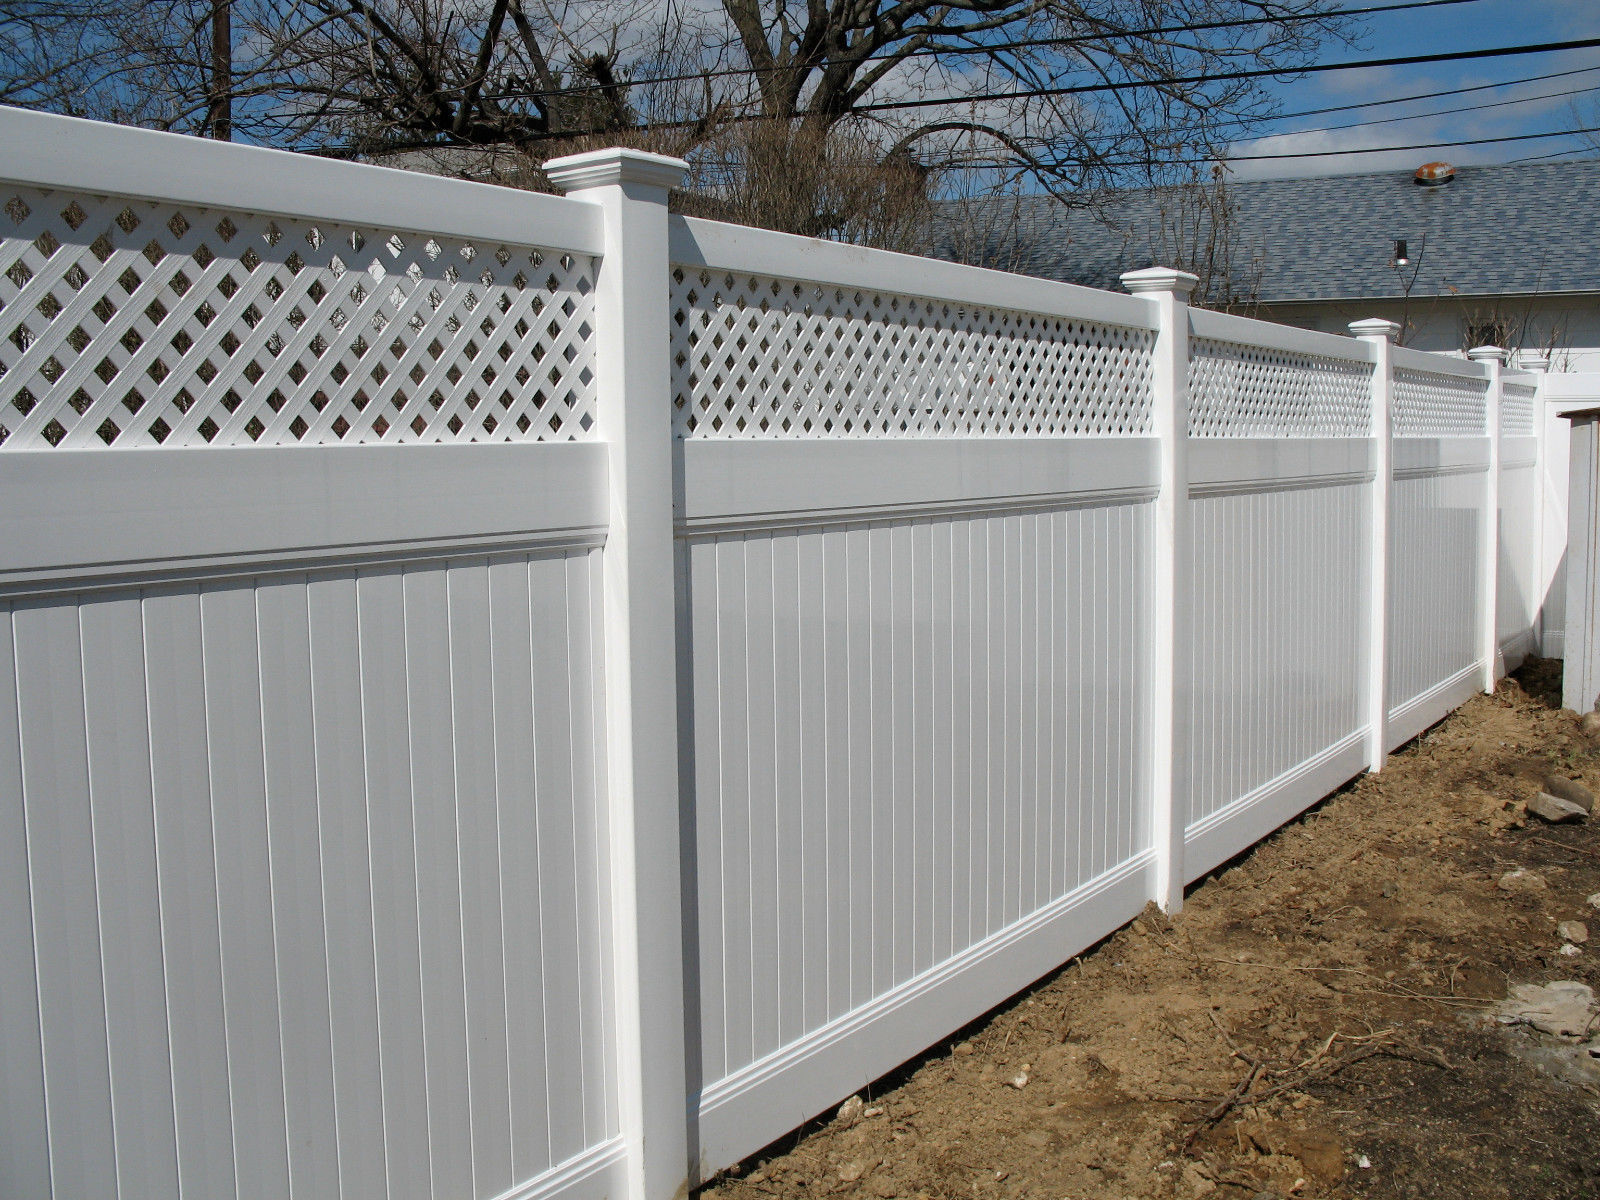 How to make an outdoor privacy screen ebay for Outdoor privacy fence screen